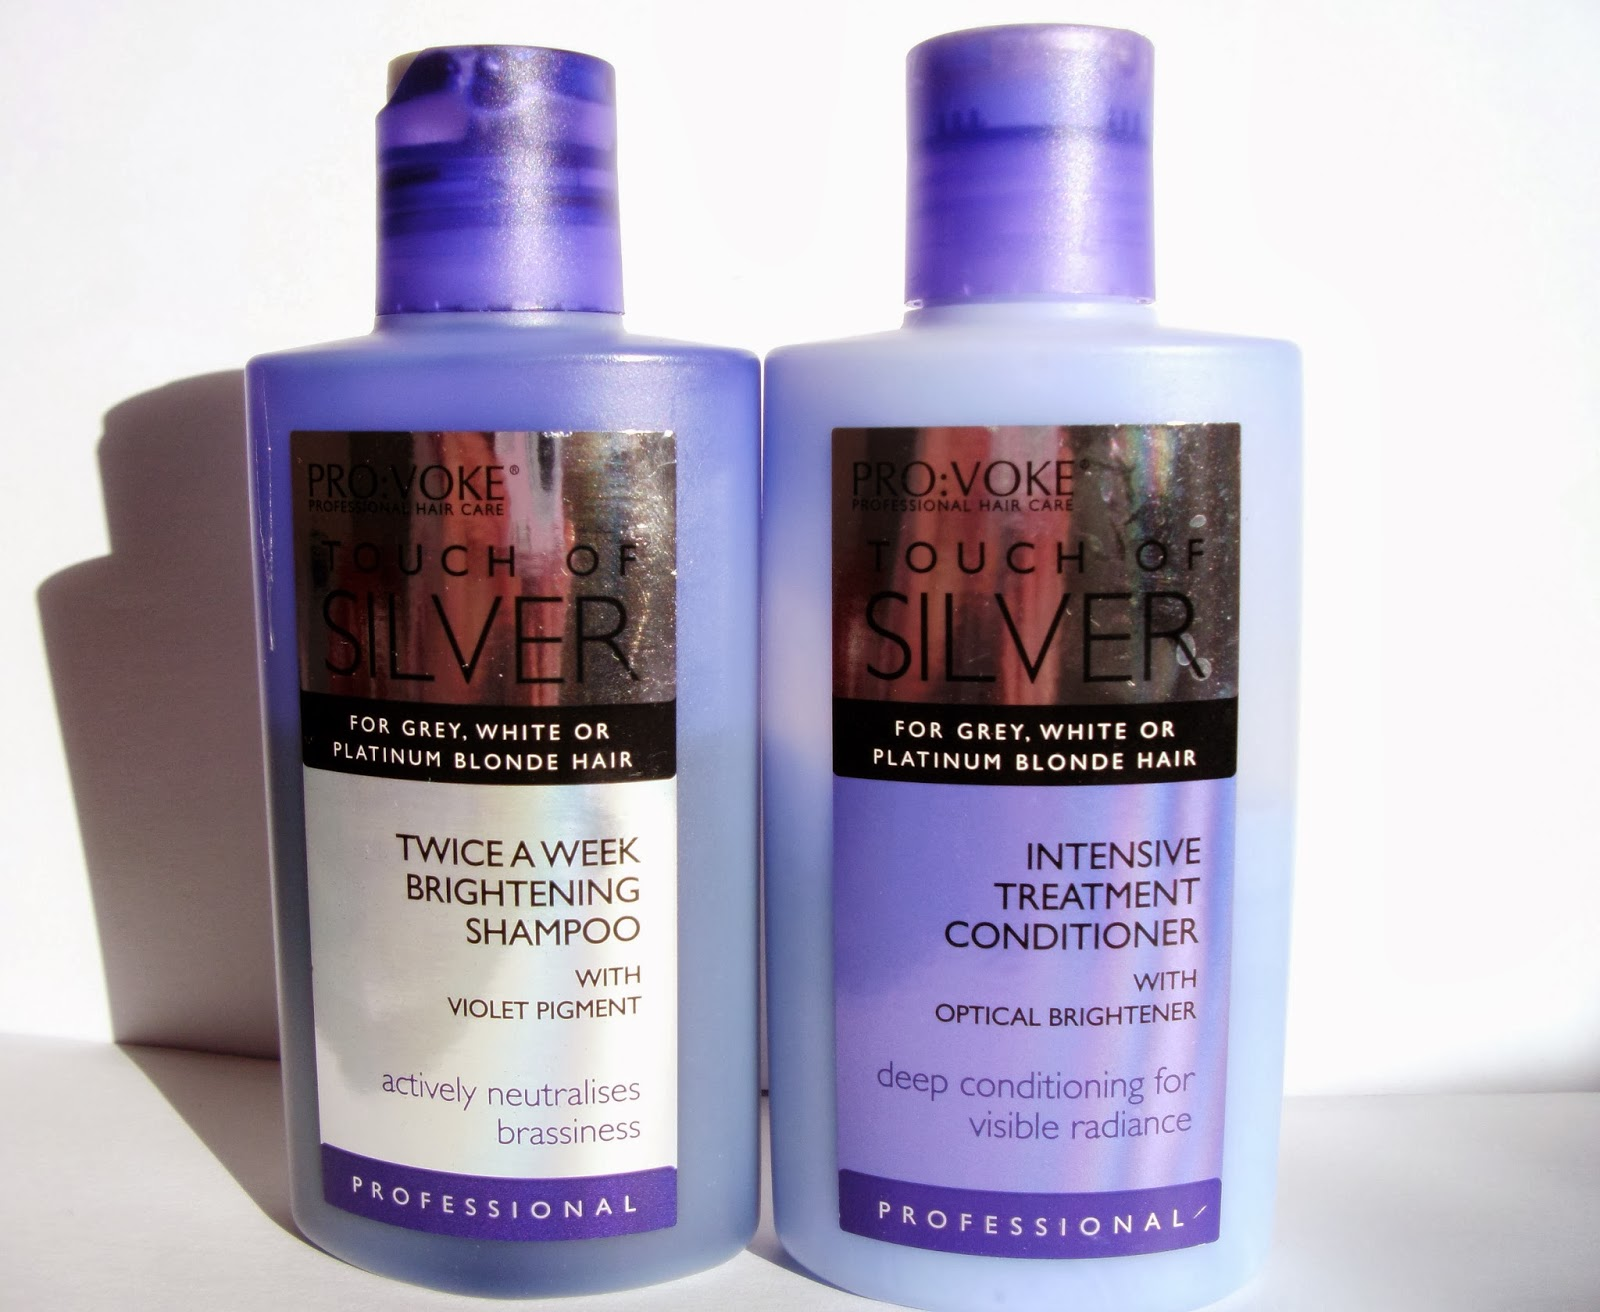 PRO:VOKE Touch of Silver Twice A Week Brightening Shampoo With Violet Pigment - 150 ml  & PRO:VOKE Touch of Silver Intense Treatment Conditioner With Optical Brightener - 150 ml